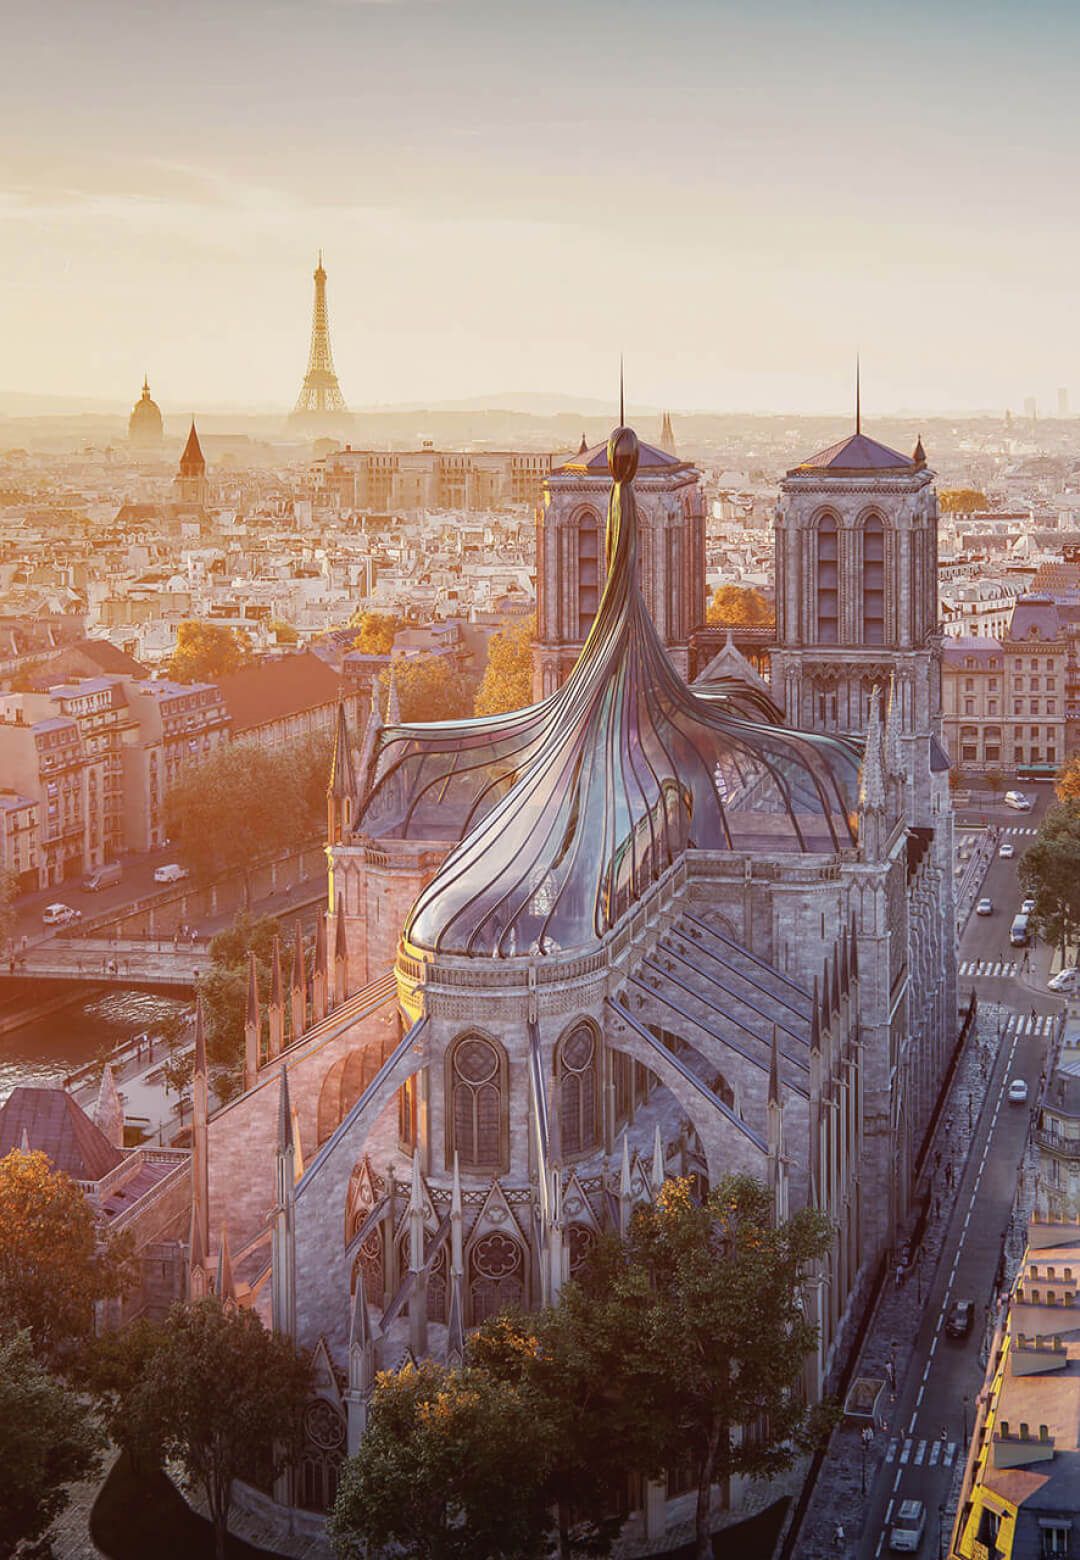 Trnsfrm imagines a twisting, stained glass spire replacing Notre Dame cathedral roof in Paris | Notre Dame cathedral roof restoration proposal by Trnsfrm | STIRworld